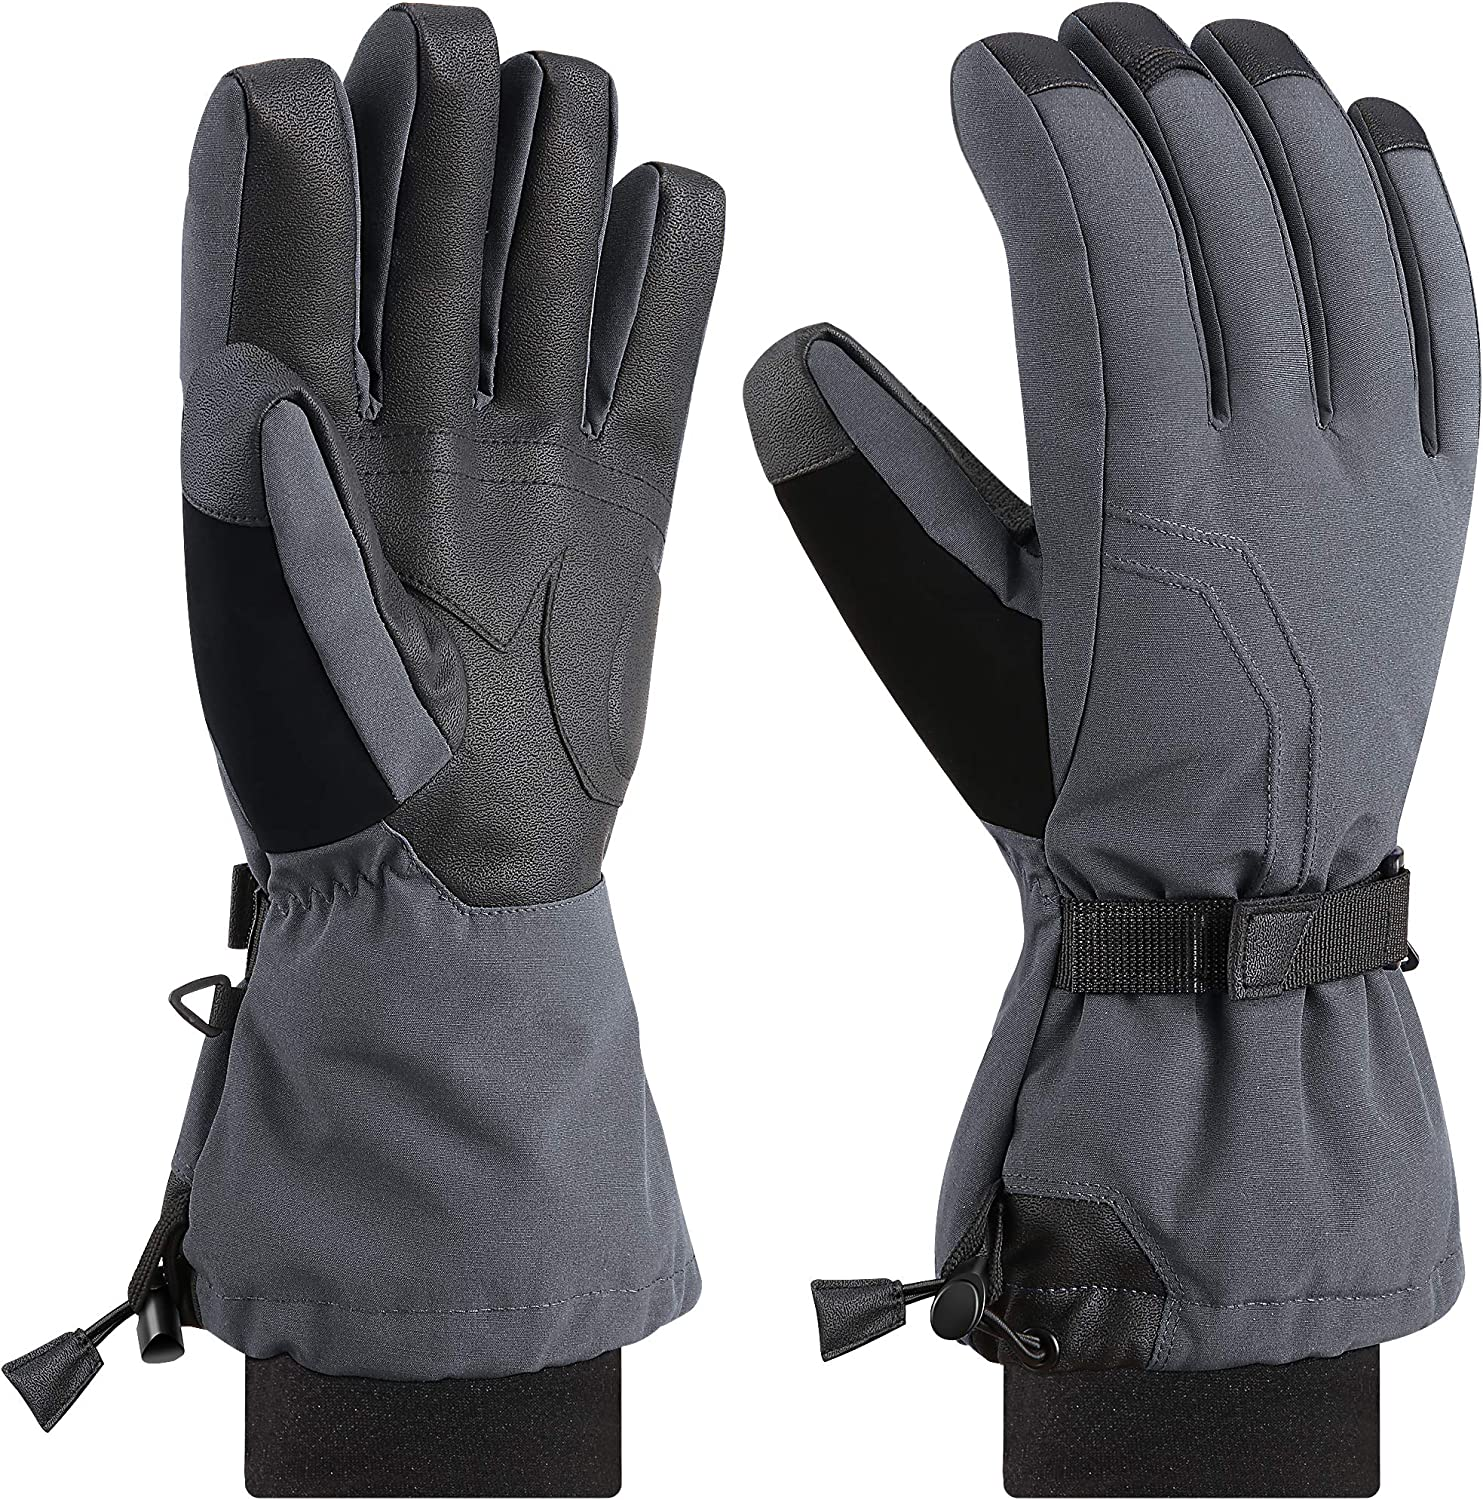 Andake 90% Duck Down Mittens Gloves For Men -20℉ Cold Weather Warm Winter Snow Gloves For Walking Jogging Work Outdoor